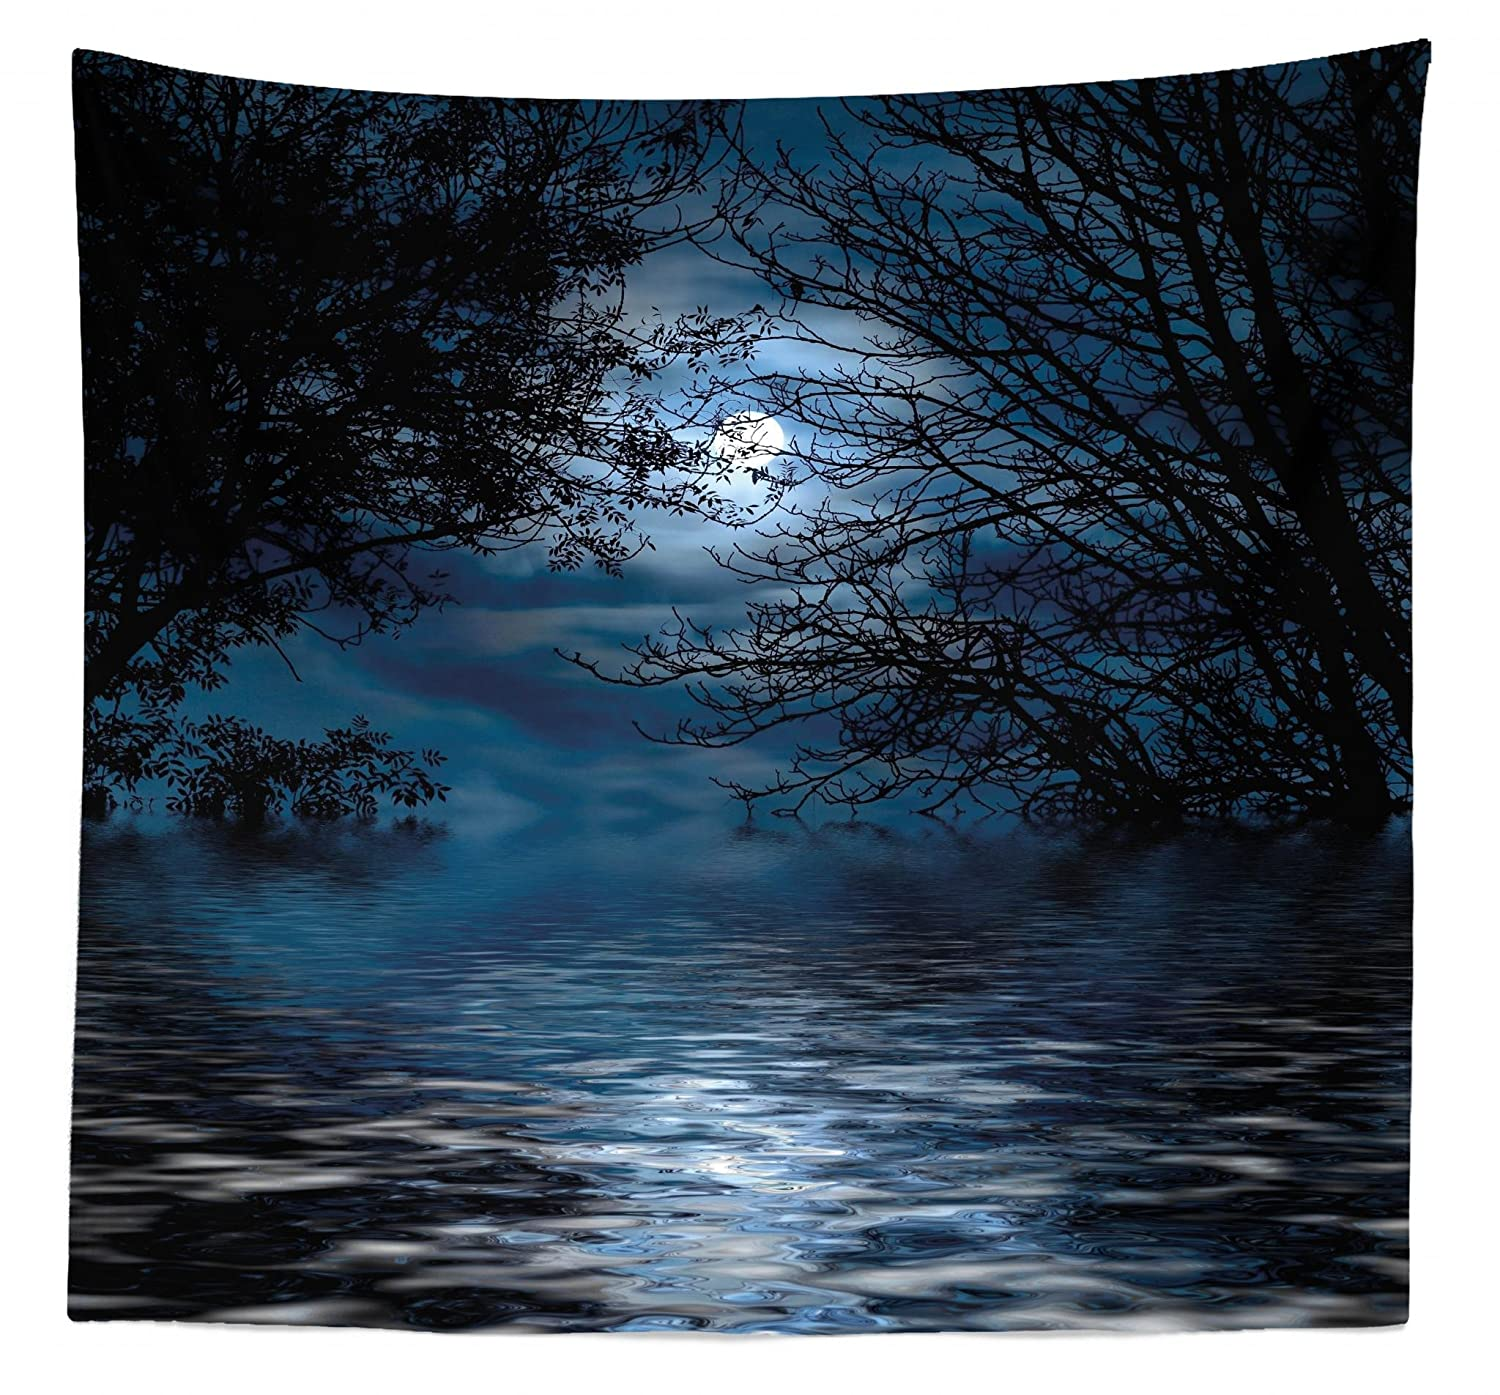 """Lunarable Night Sky Tapestry Queen Size, Witchcraft Spell Ceremony Atmosphere Forest Full Moon Branches Image, Wall Hanging Bedspread Bed Cover Wall Decor, 88"""" X 88"""", Blue Black"""